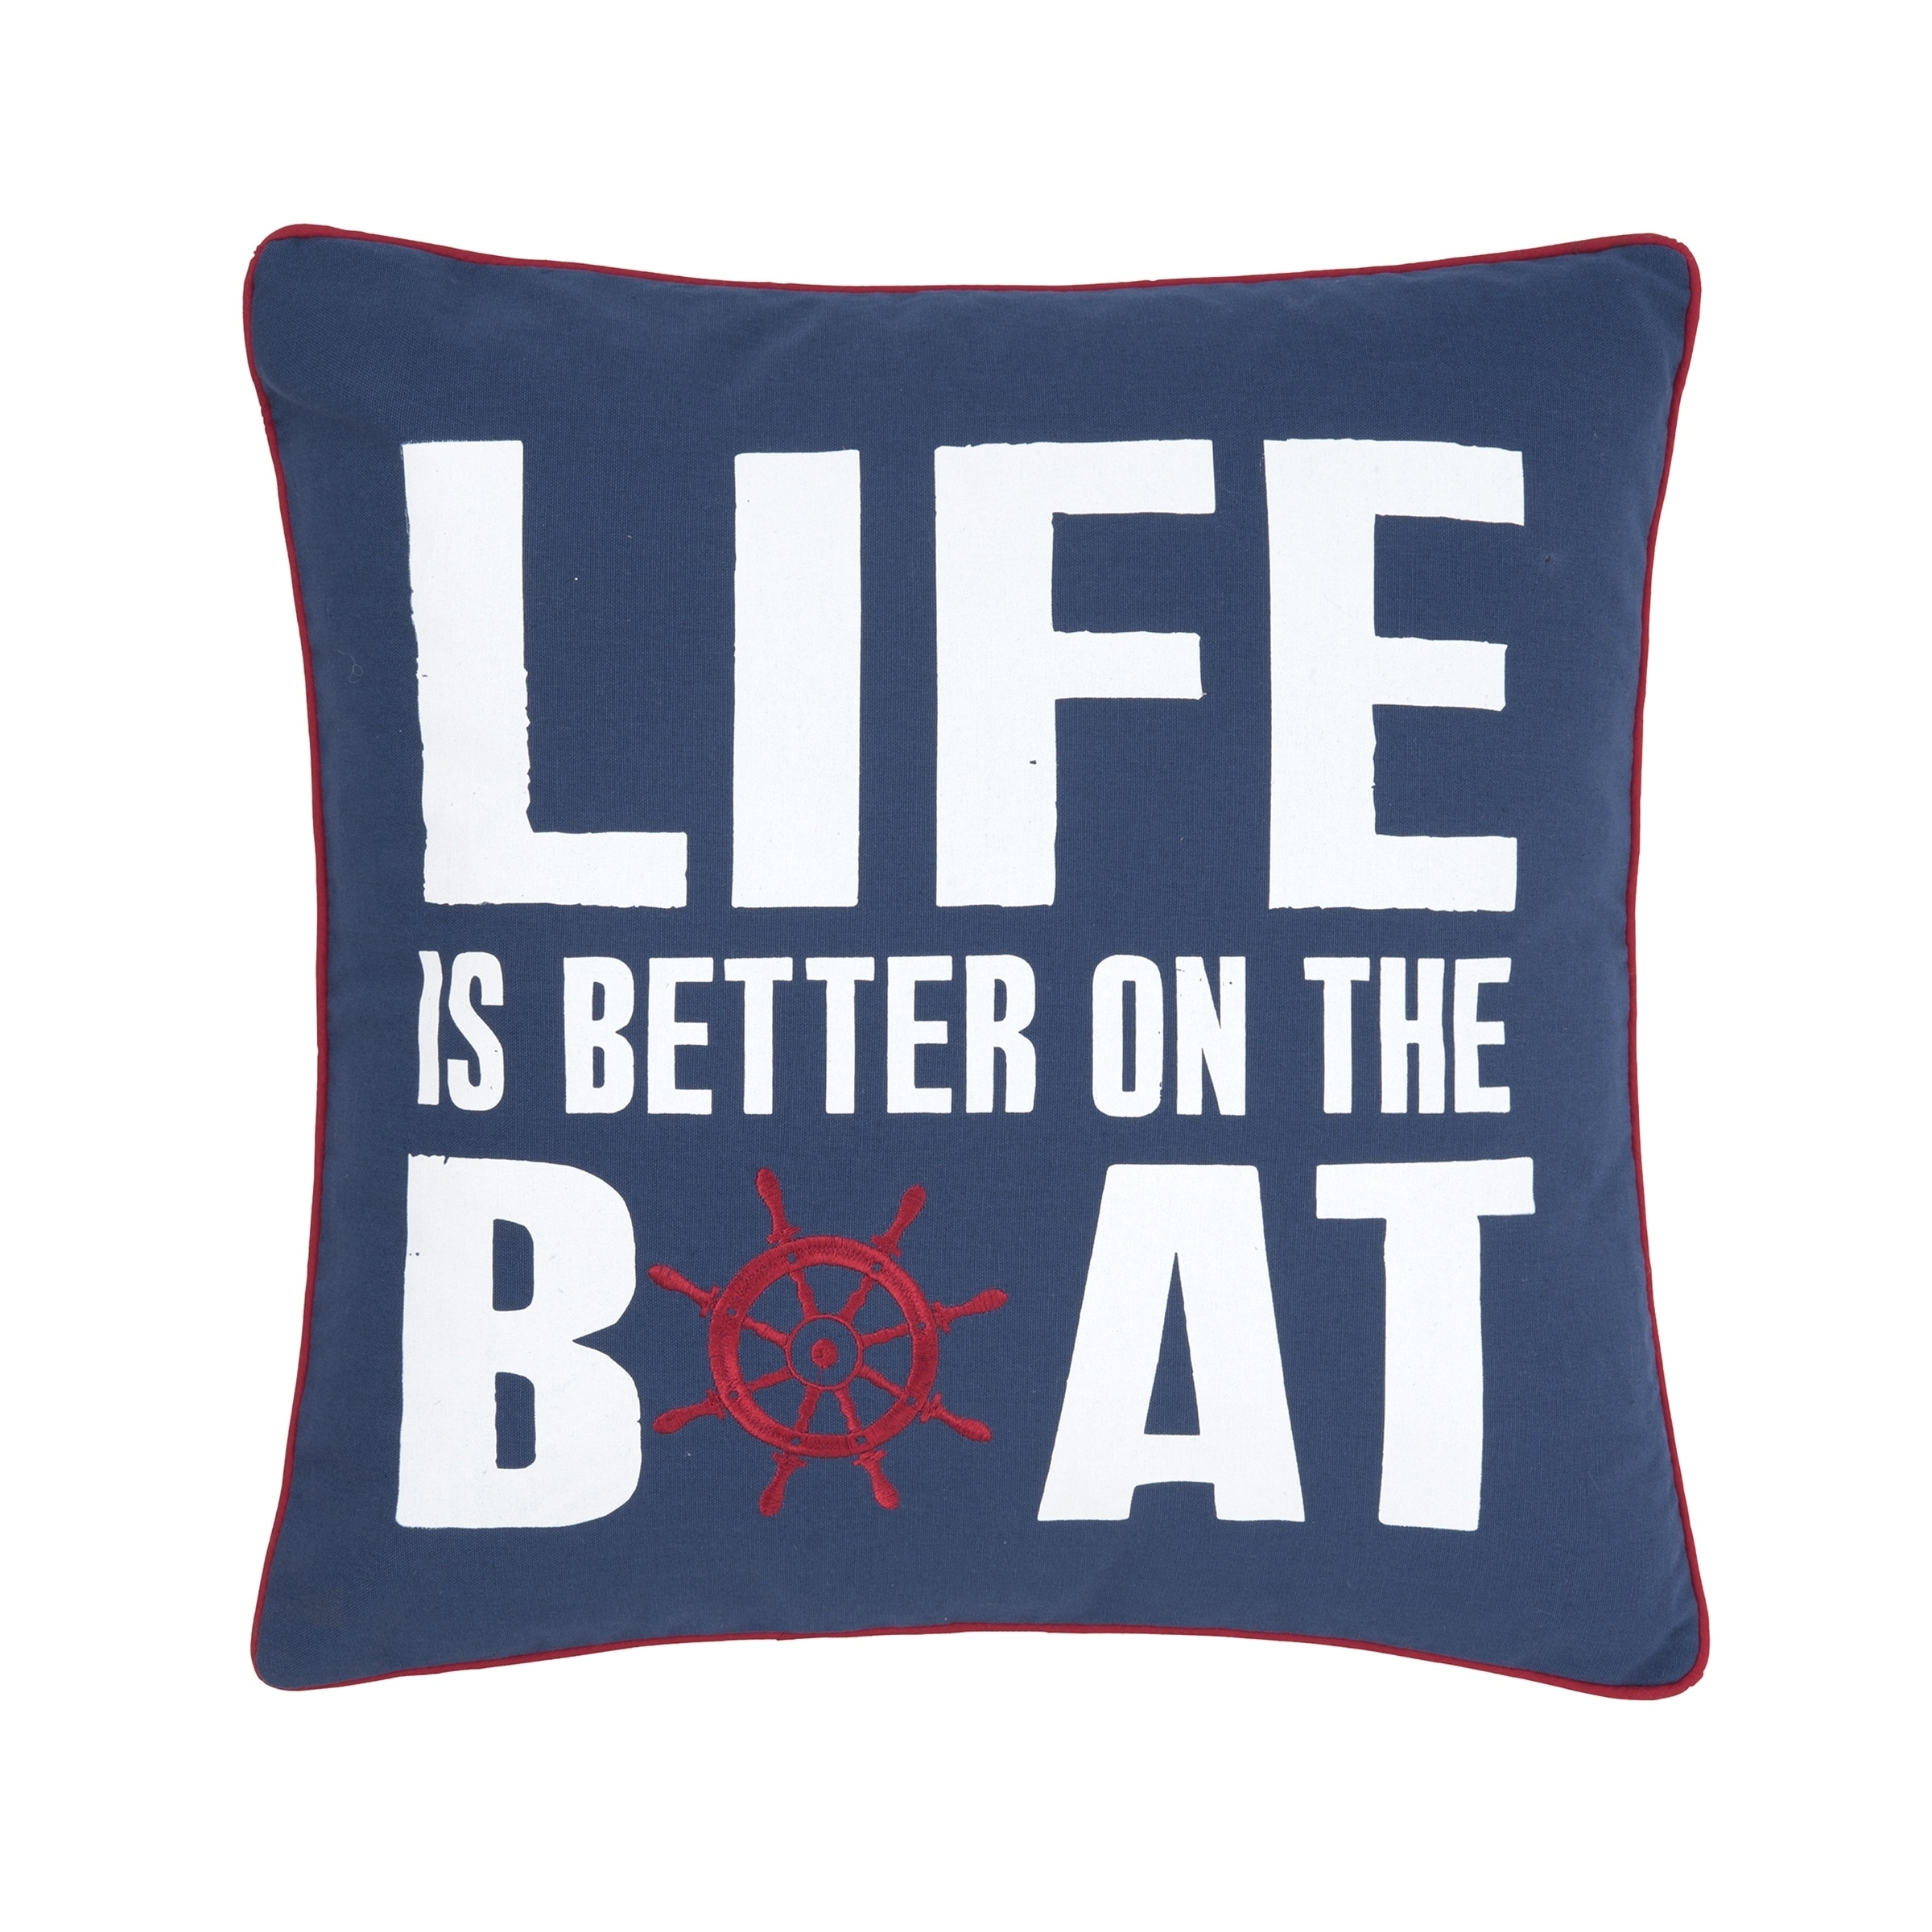 Better On The Boat 18 x 18 Pillow